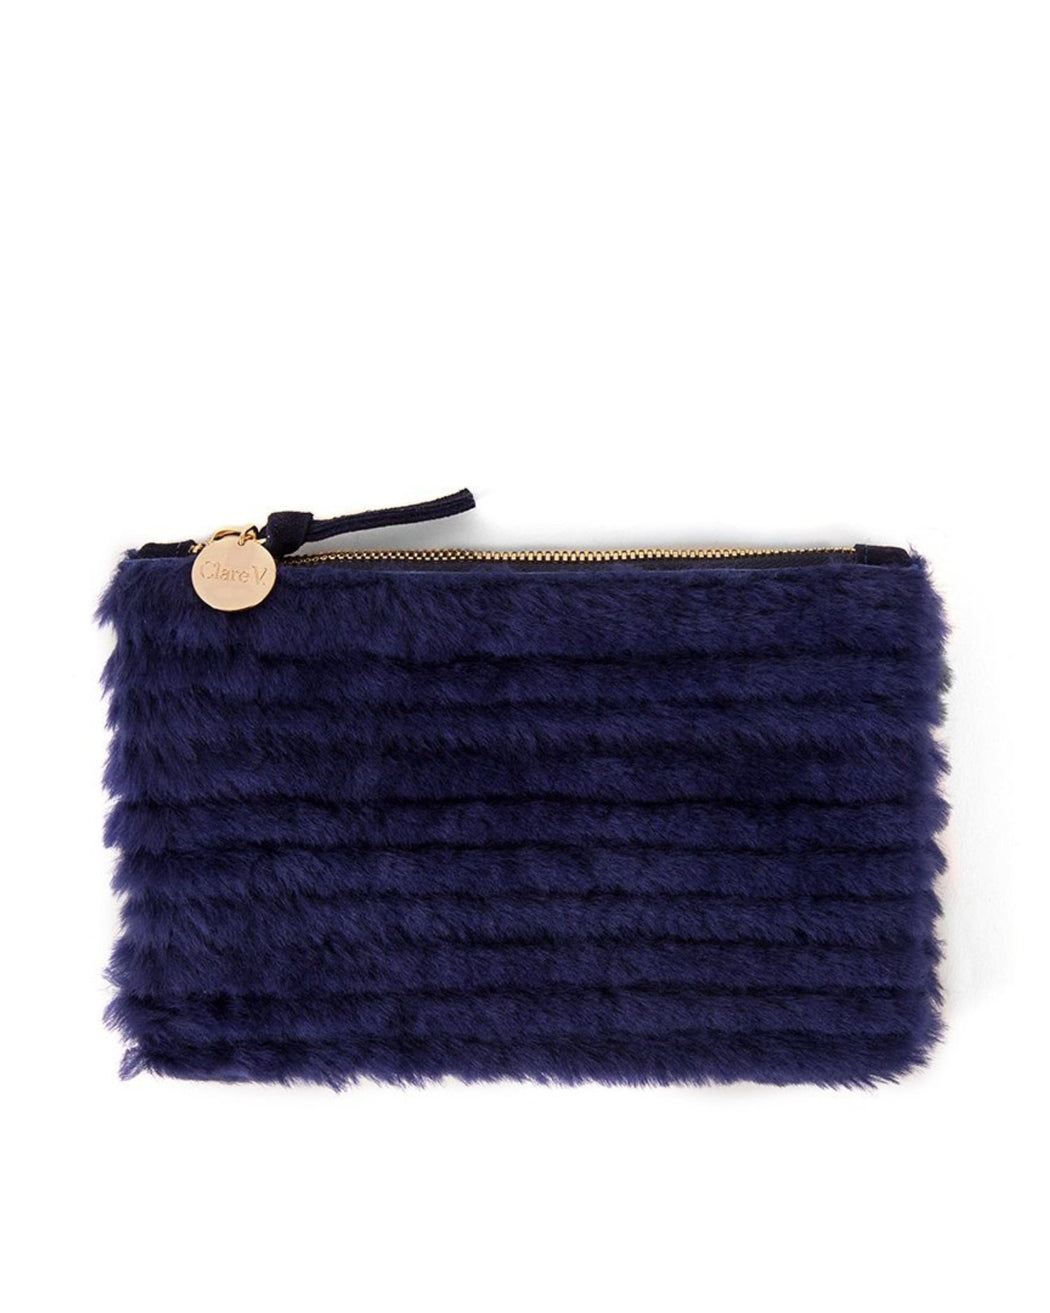 Clare V.:Wallet Clutch – Midnight Hair-On,ANOMIE